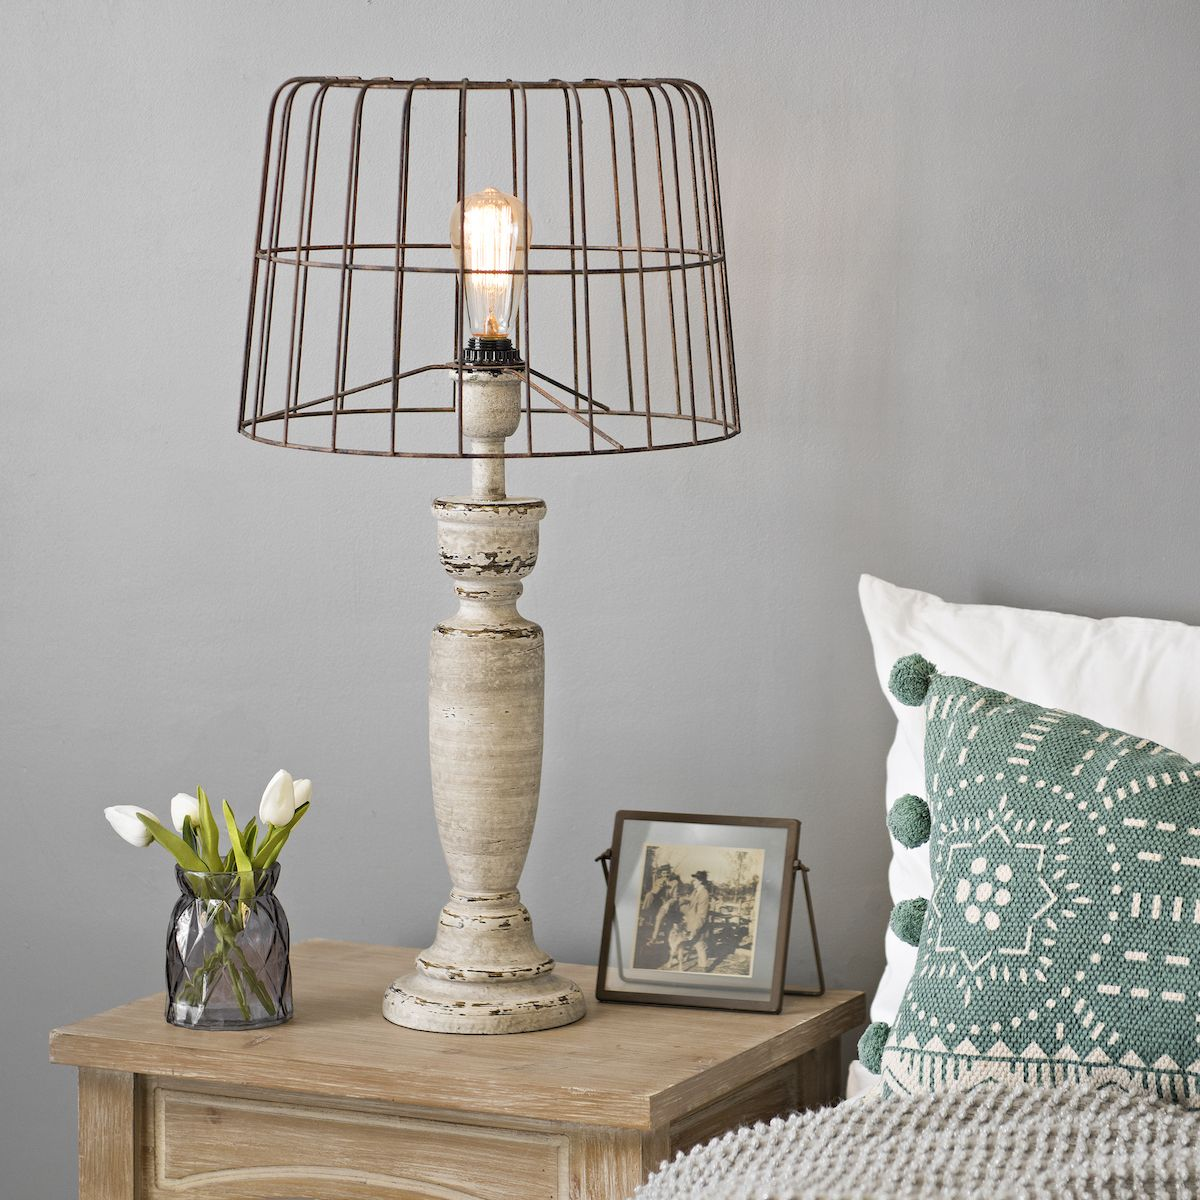 No Shade But This Lamp Is The Best Farmhouse Table Lamps House Lamp Lamps Living Room